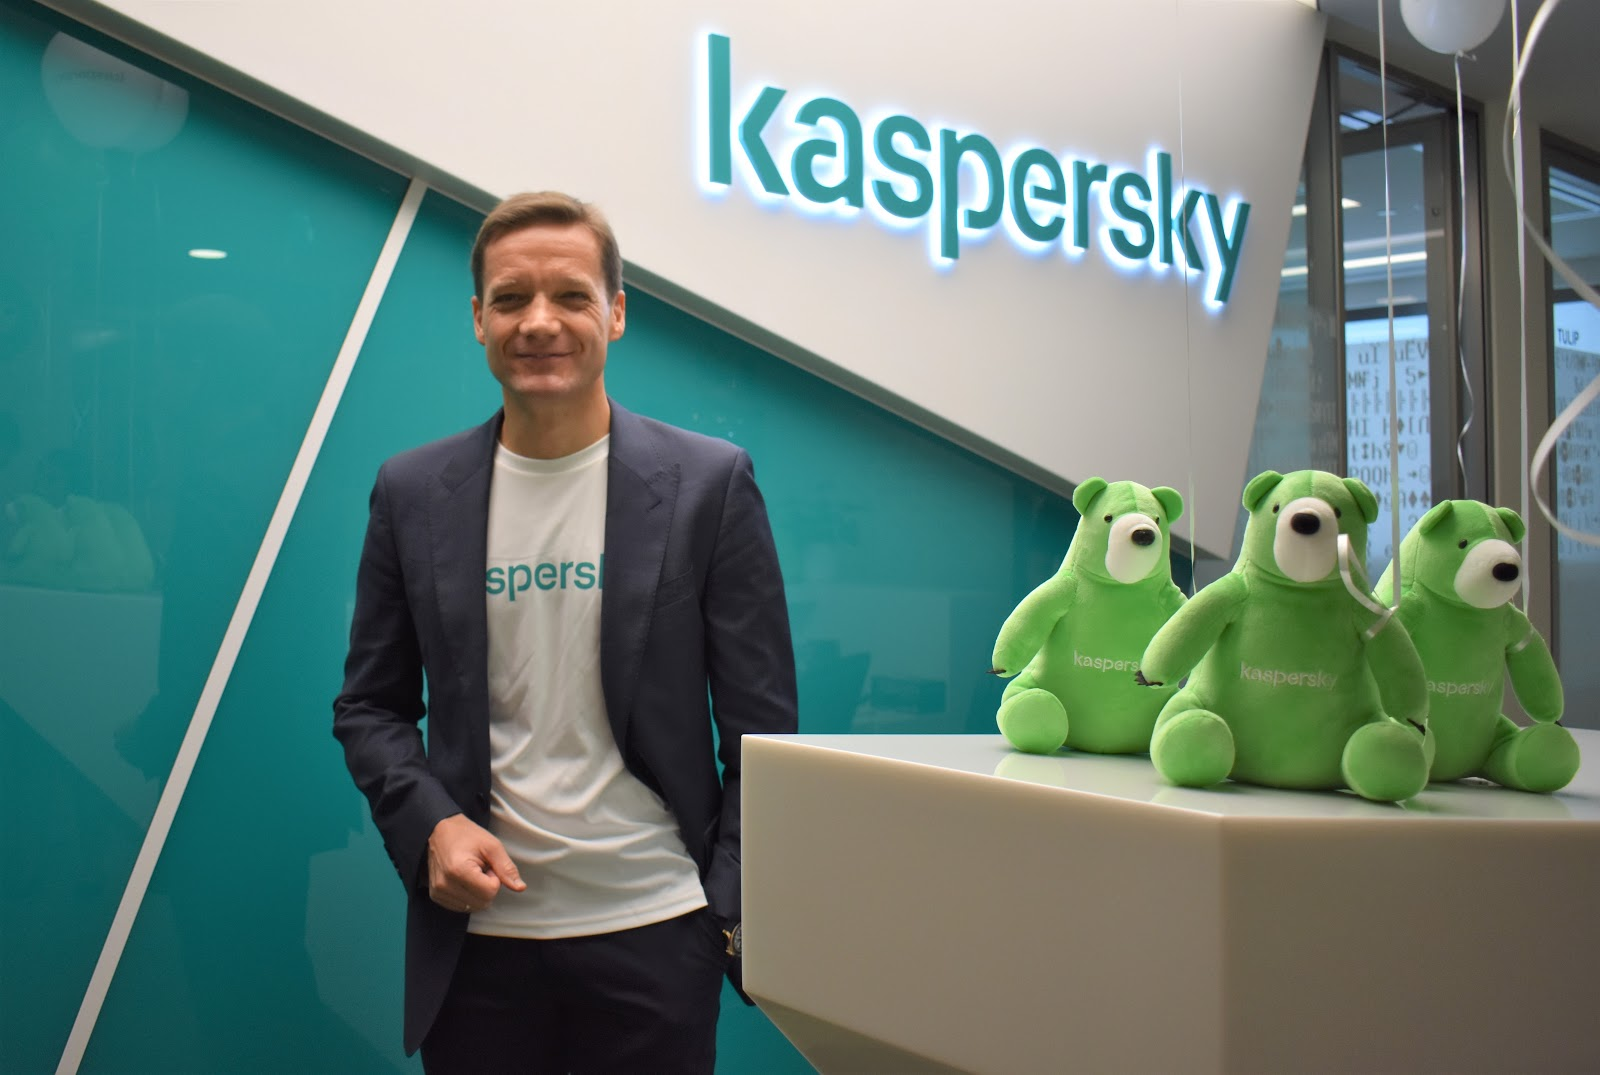 A Fresh Look for A Fresh Year: Kaspersky rebrands offices in APAC to welcome 2020 1